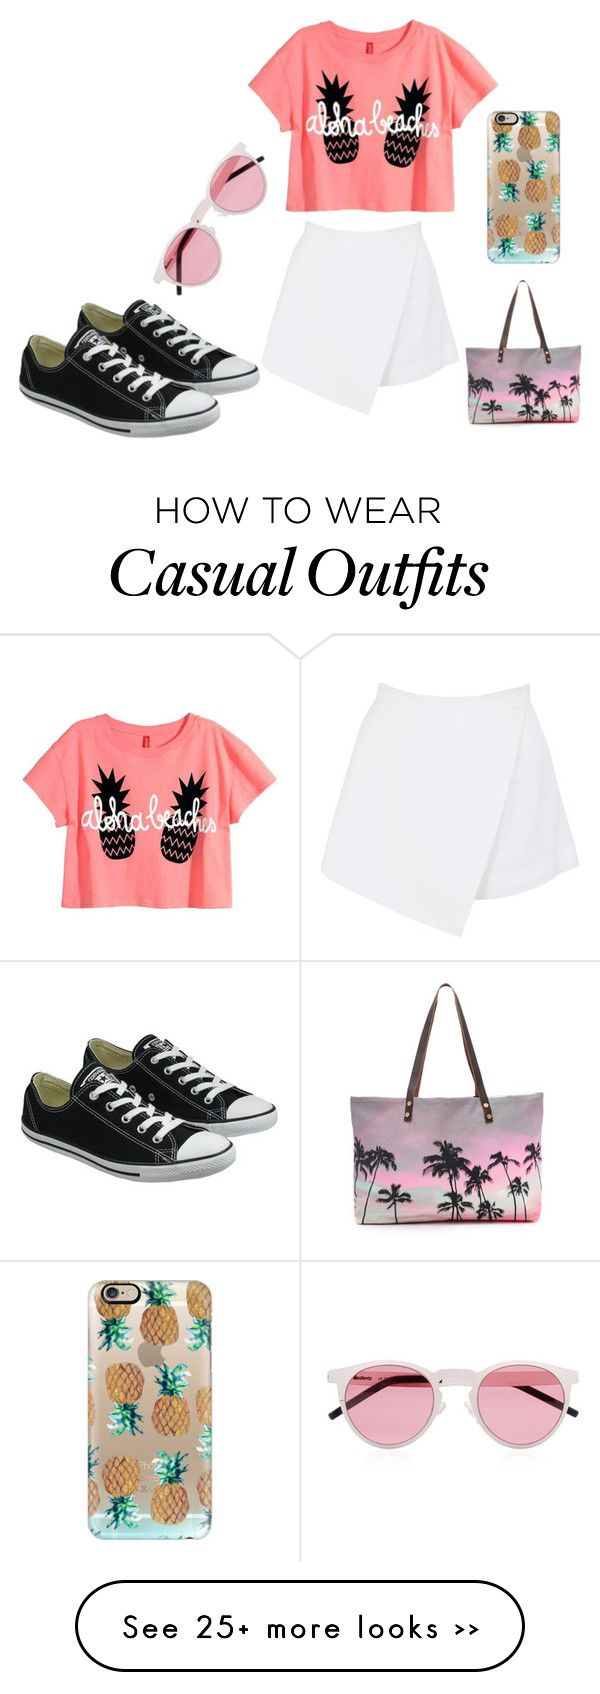 """""""Summer Casual"""" by catwalk-664 on Polyvore featuring Casetify, Illesteva, BeginAgain Toys, Samudra and Converse"""